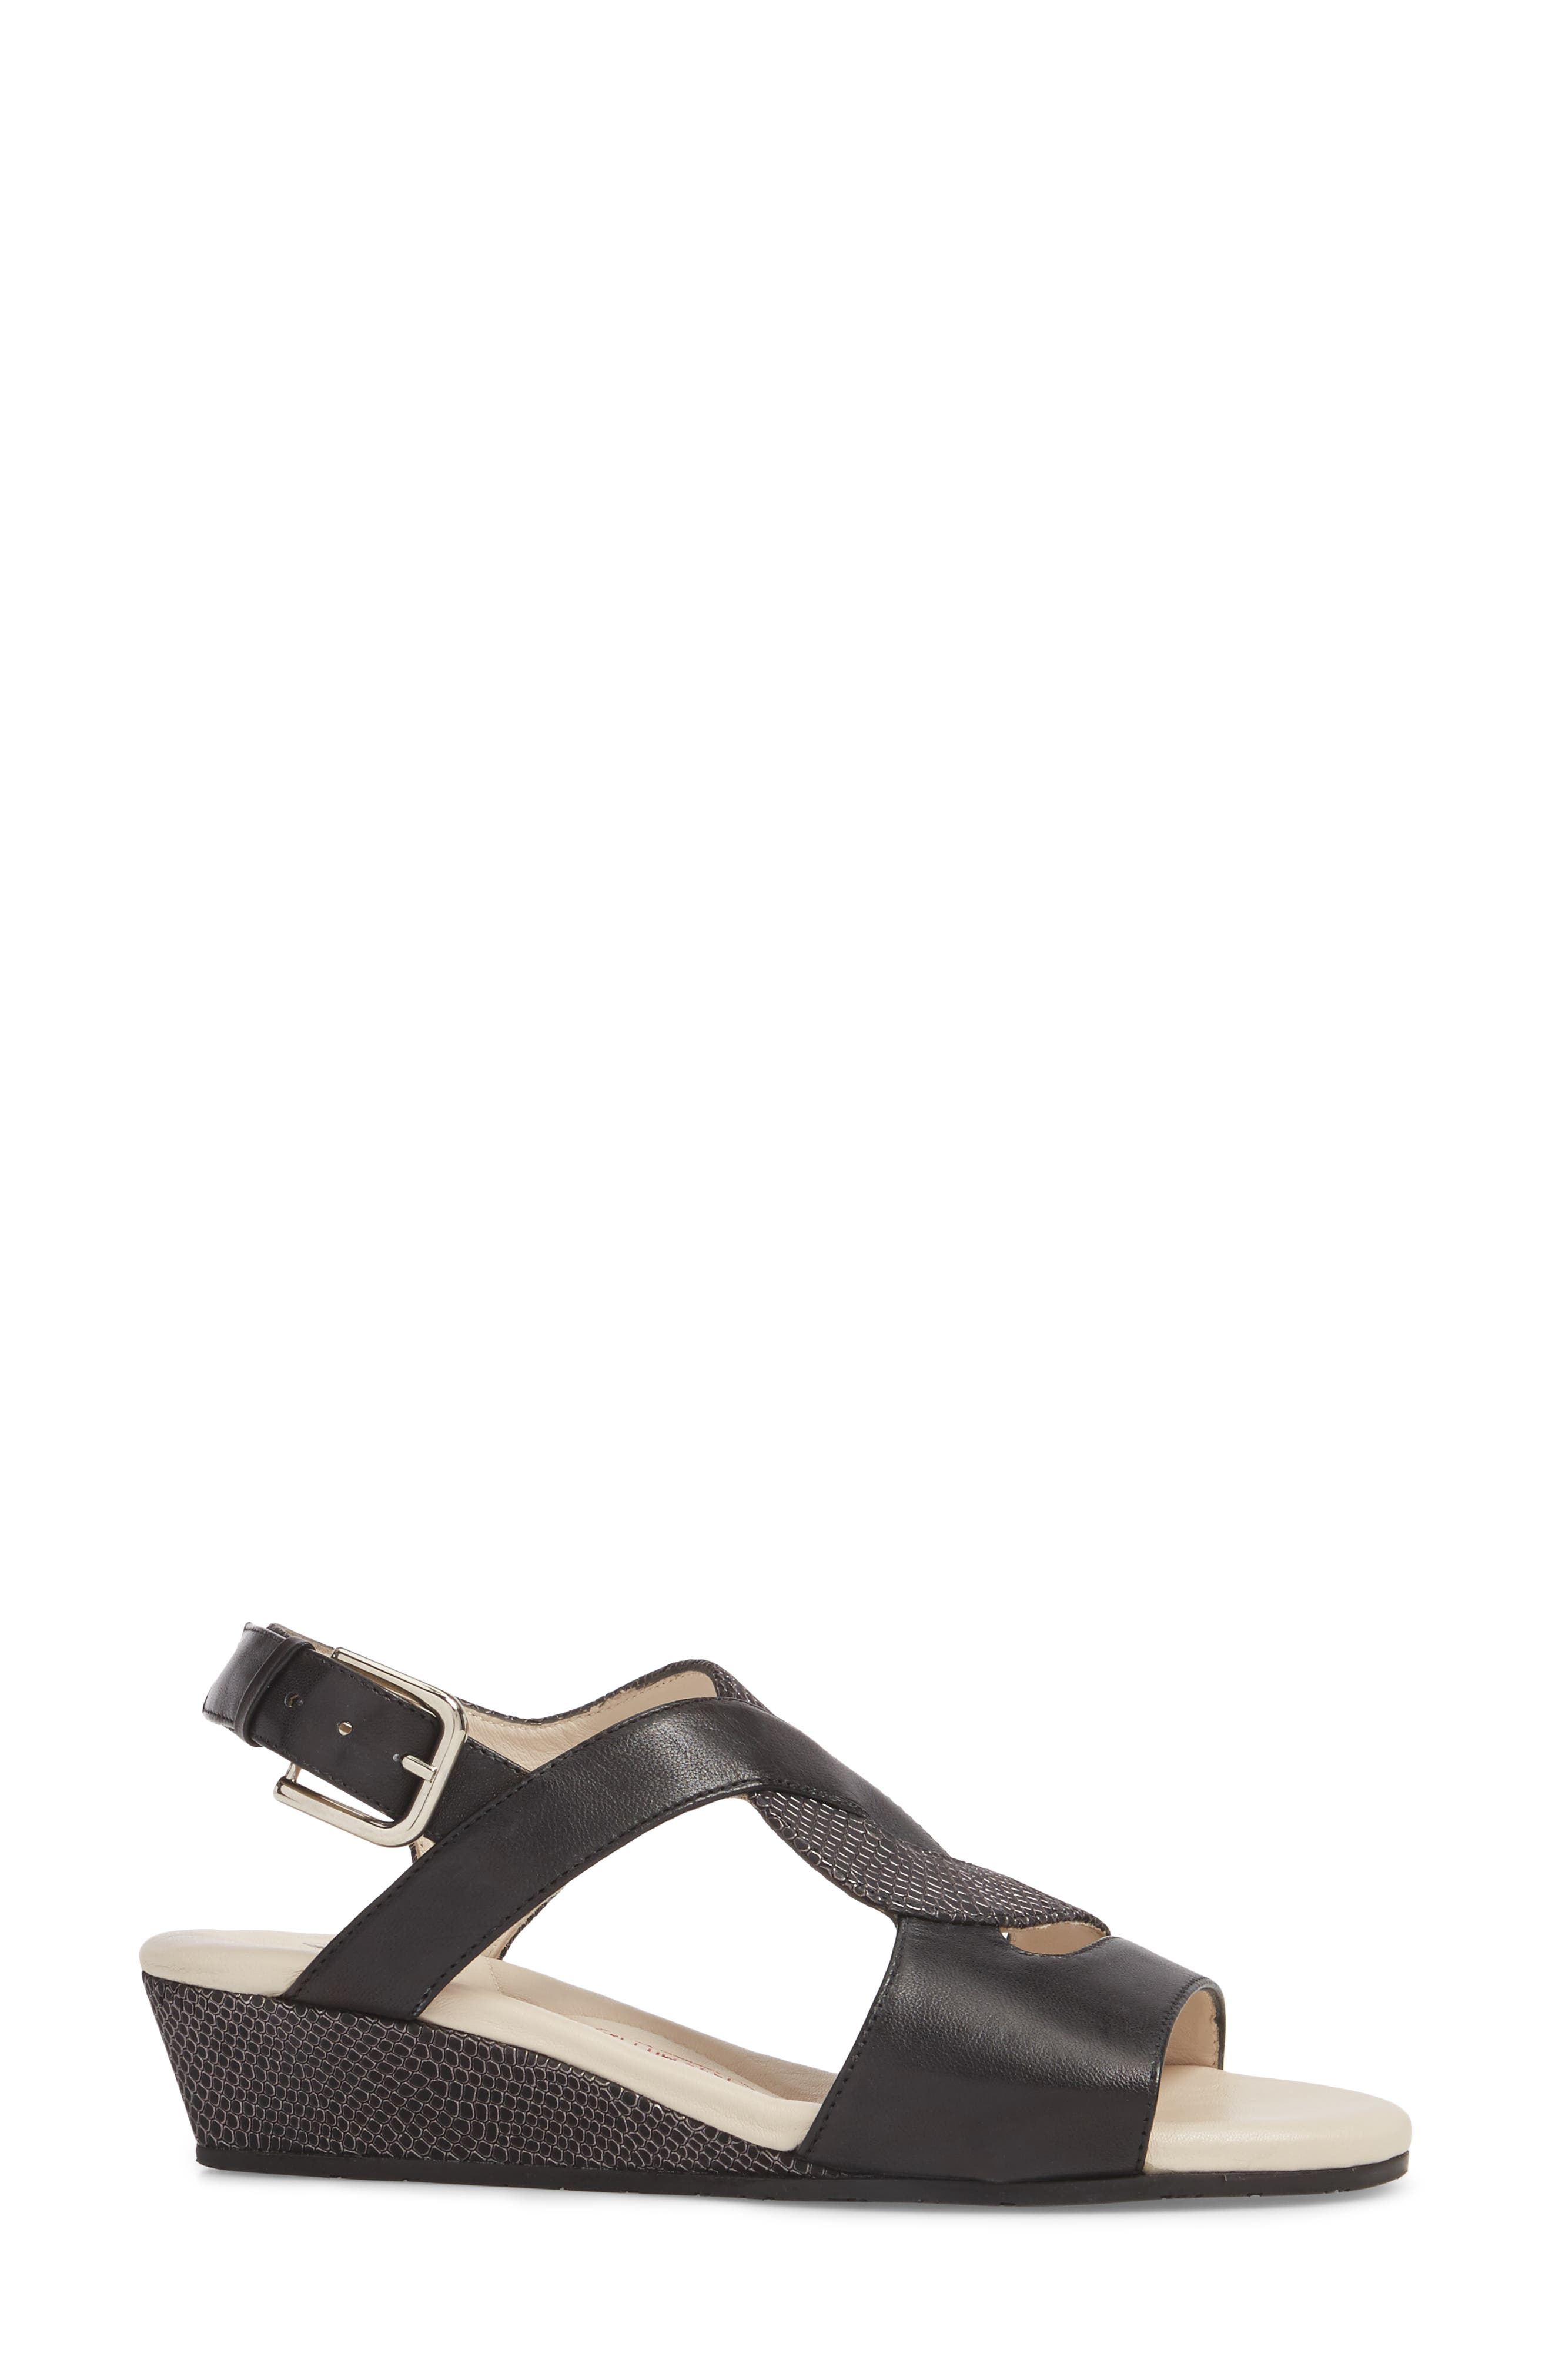 Morosa Wedge Sandal,                             Alternate thumbnail 3, color,                             GRAPHITE LEATHER